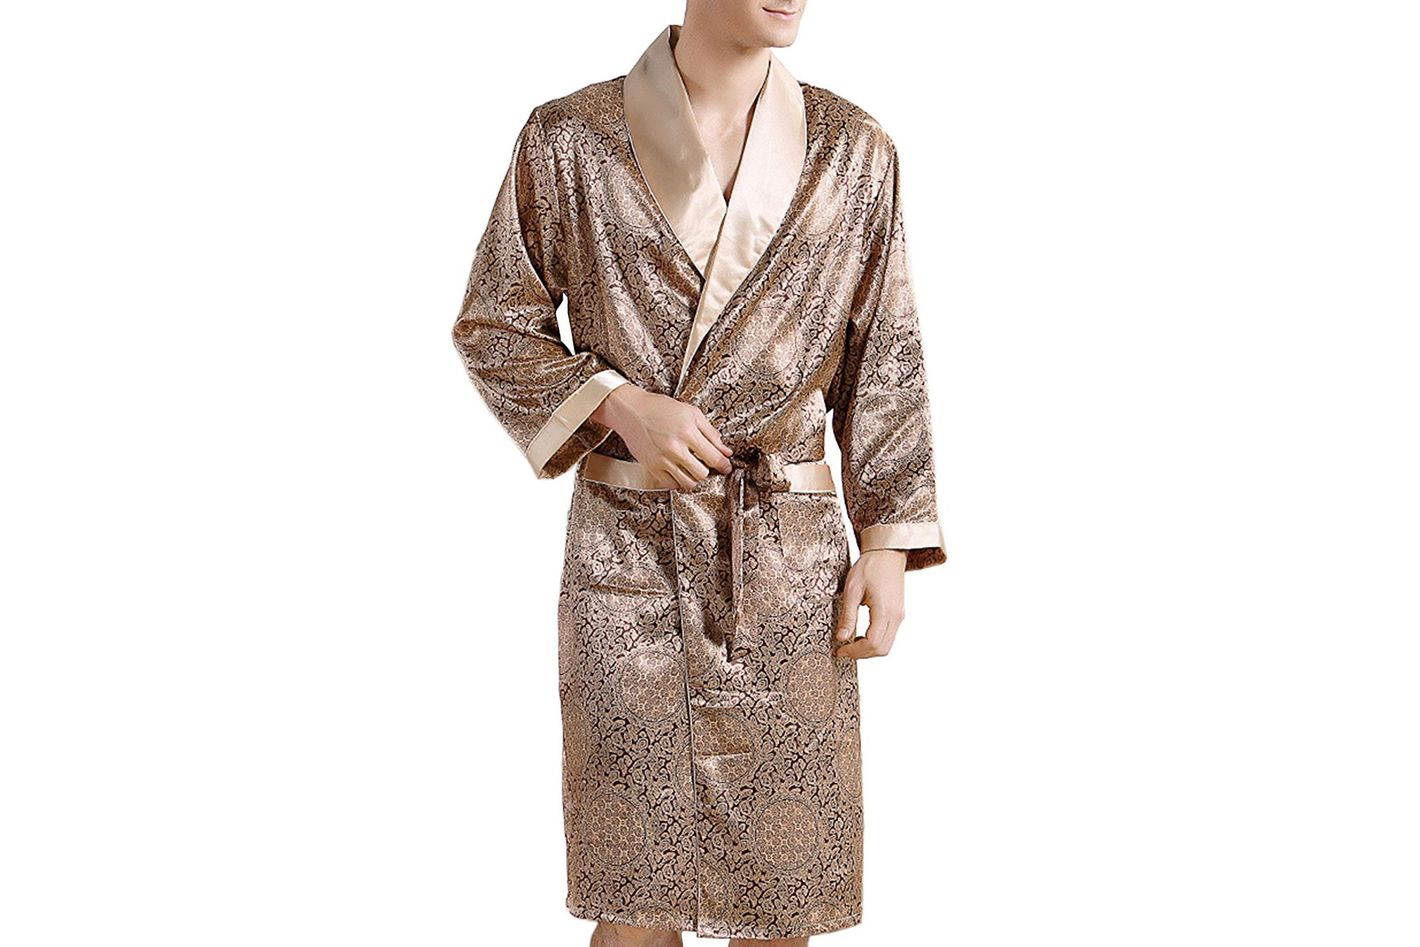 Binken Men s Satin Pajamas Sleepwear Robe at Amazon 942896036